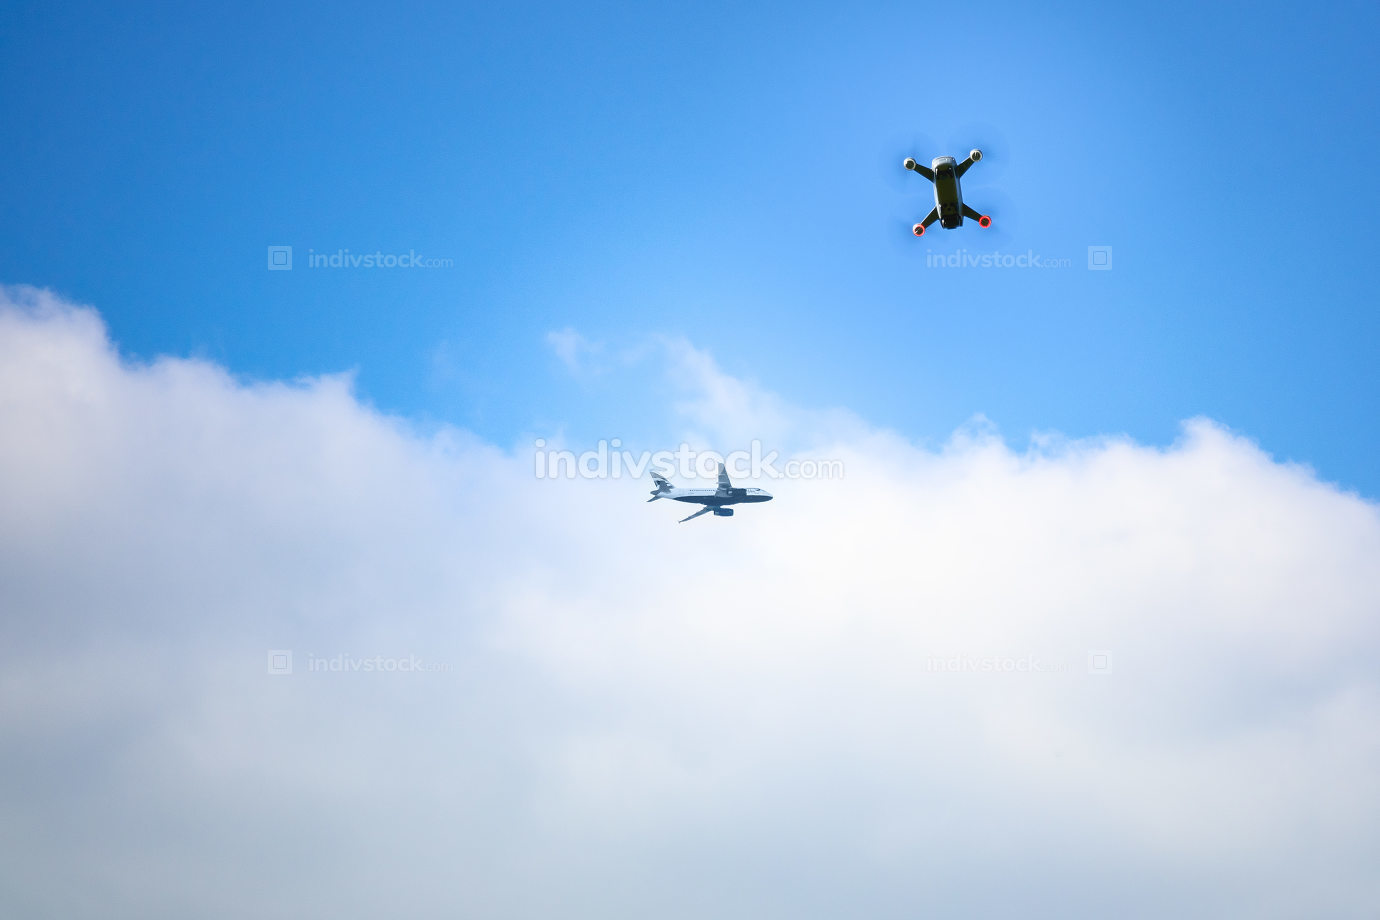 toy drone and airplane blue sky background